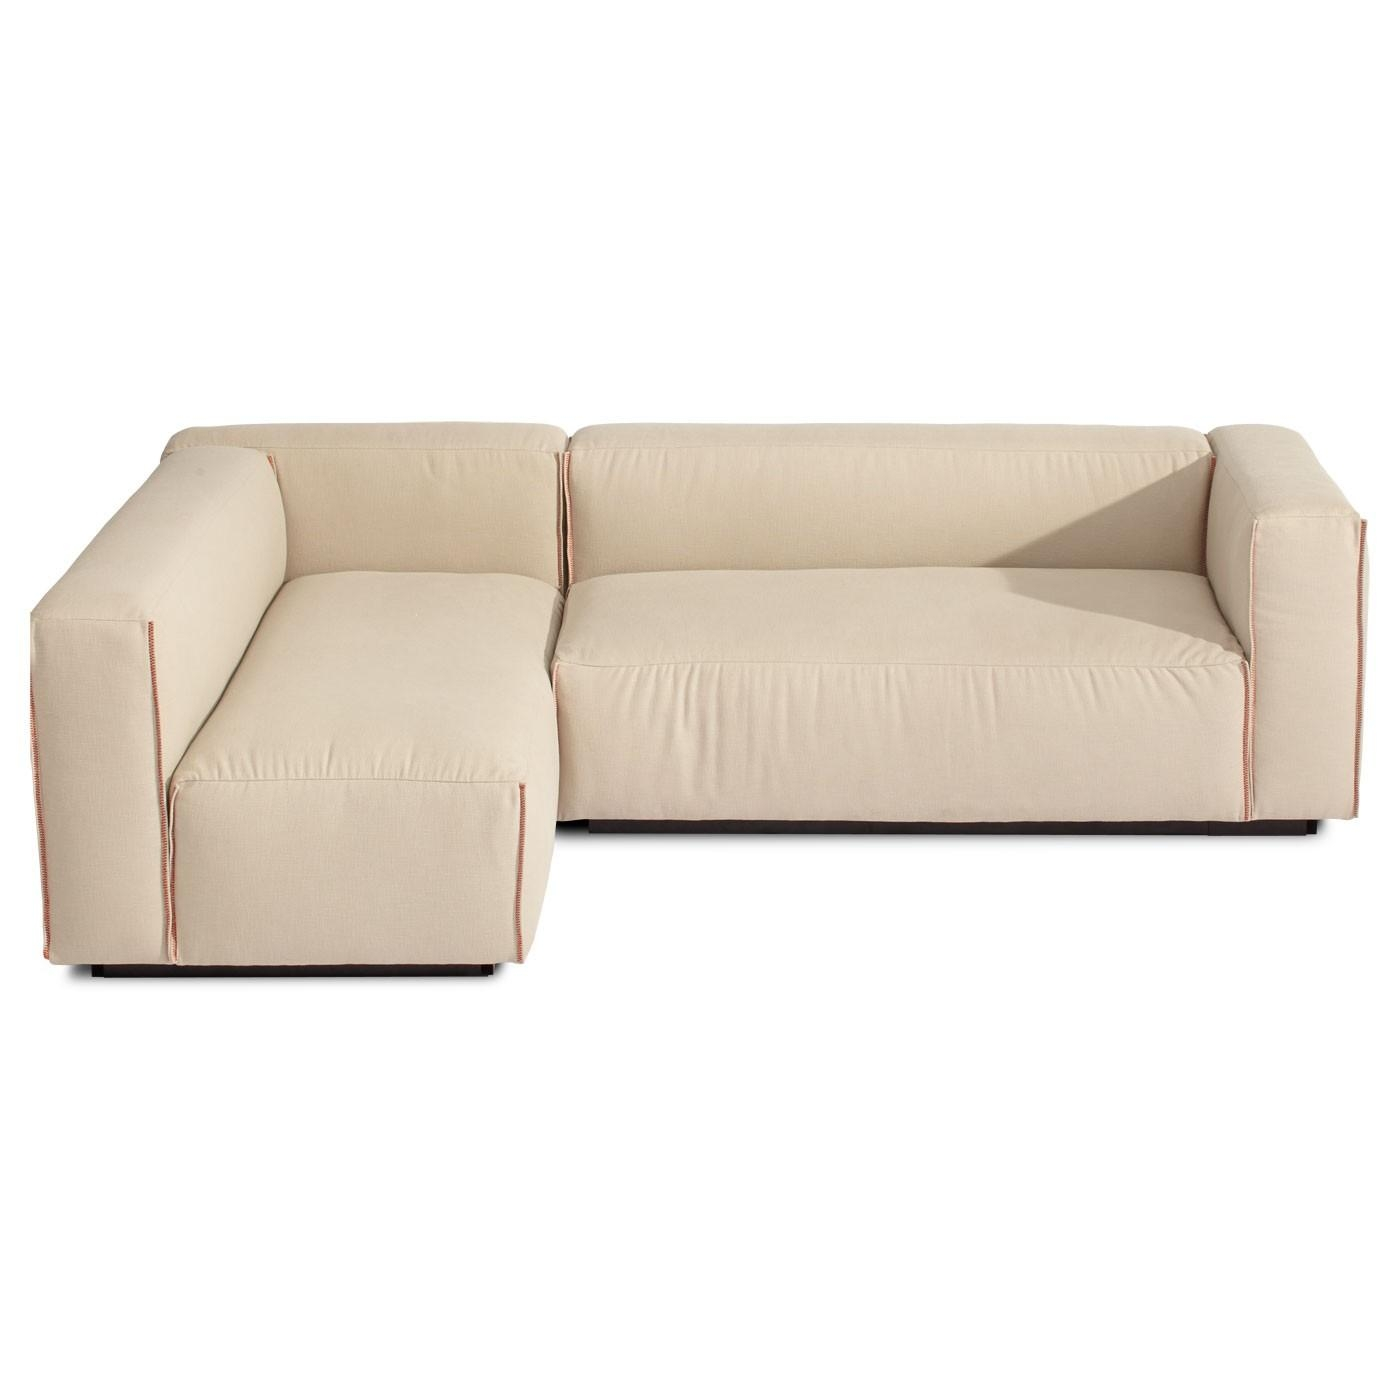 Modular Sectional Sofa Small Spaces